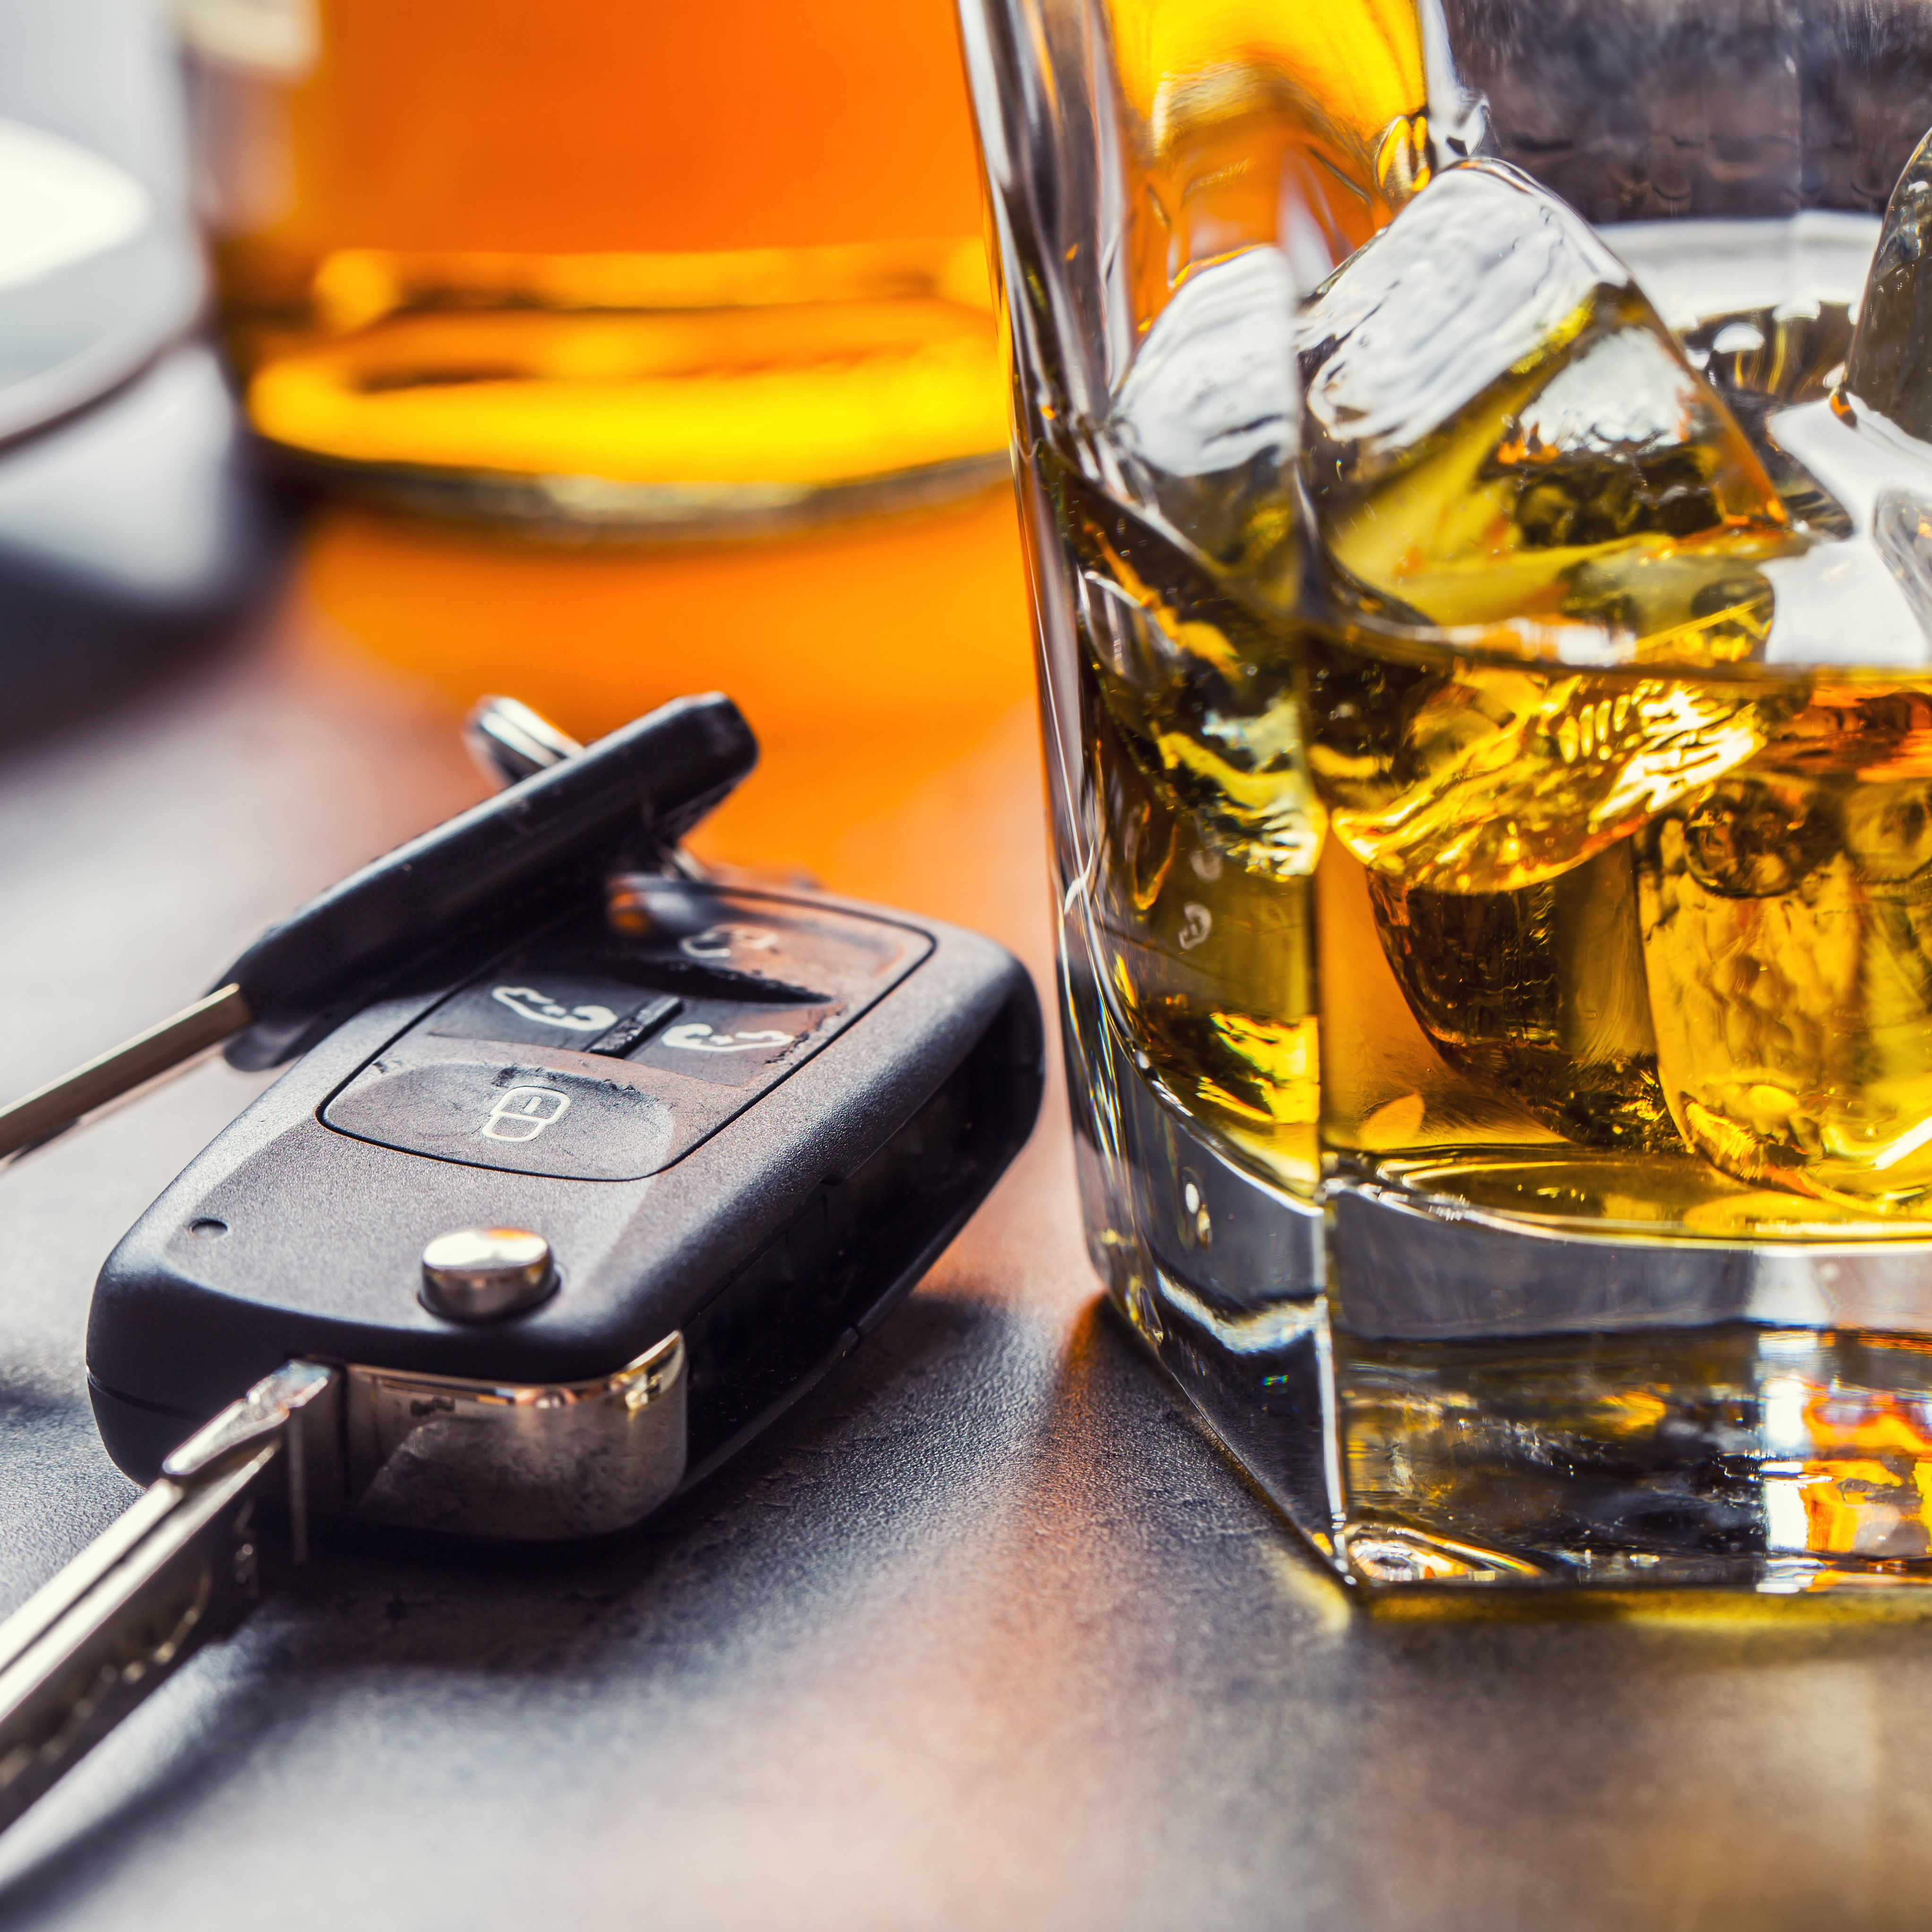 Car keys and a glass of alcohol on top of a table.